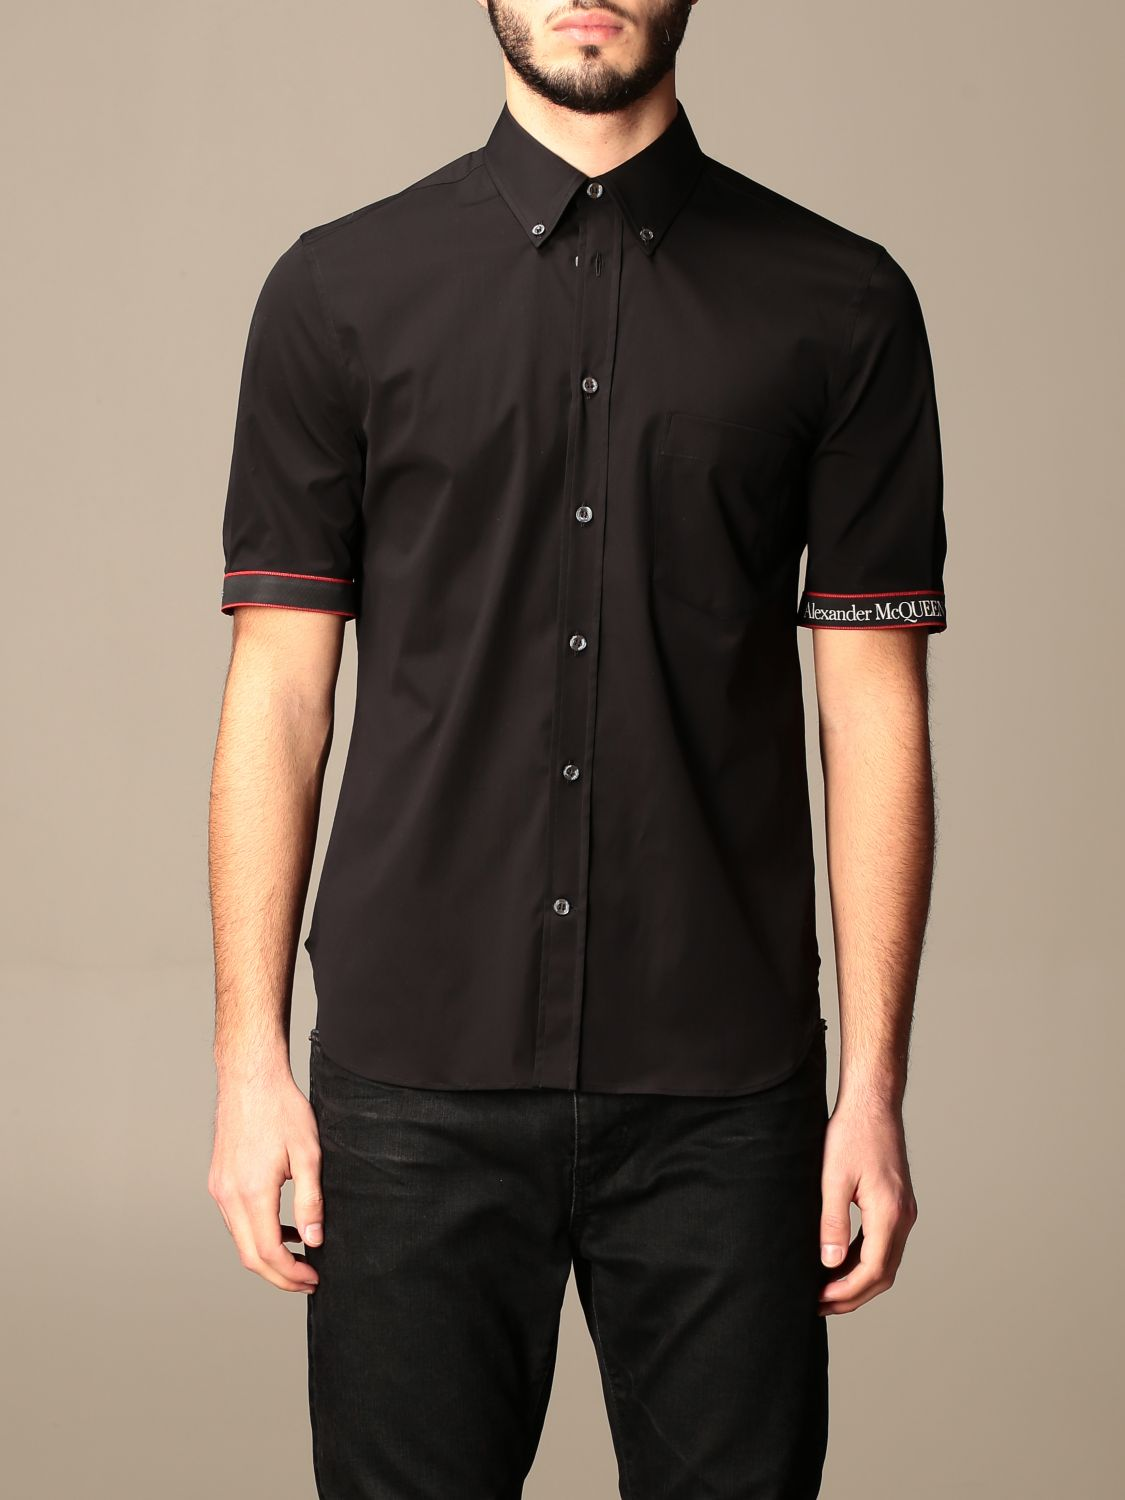 Shirt Alexander Mcqueen: Alexander McQueen shirt with logoed bands black 1